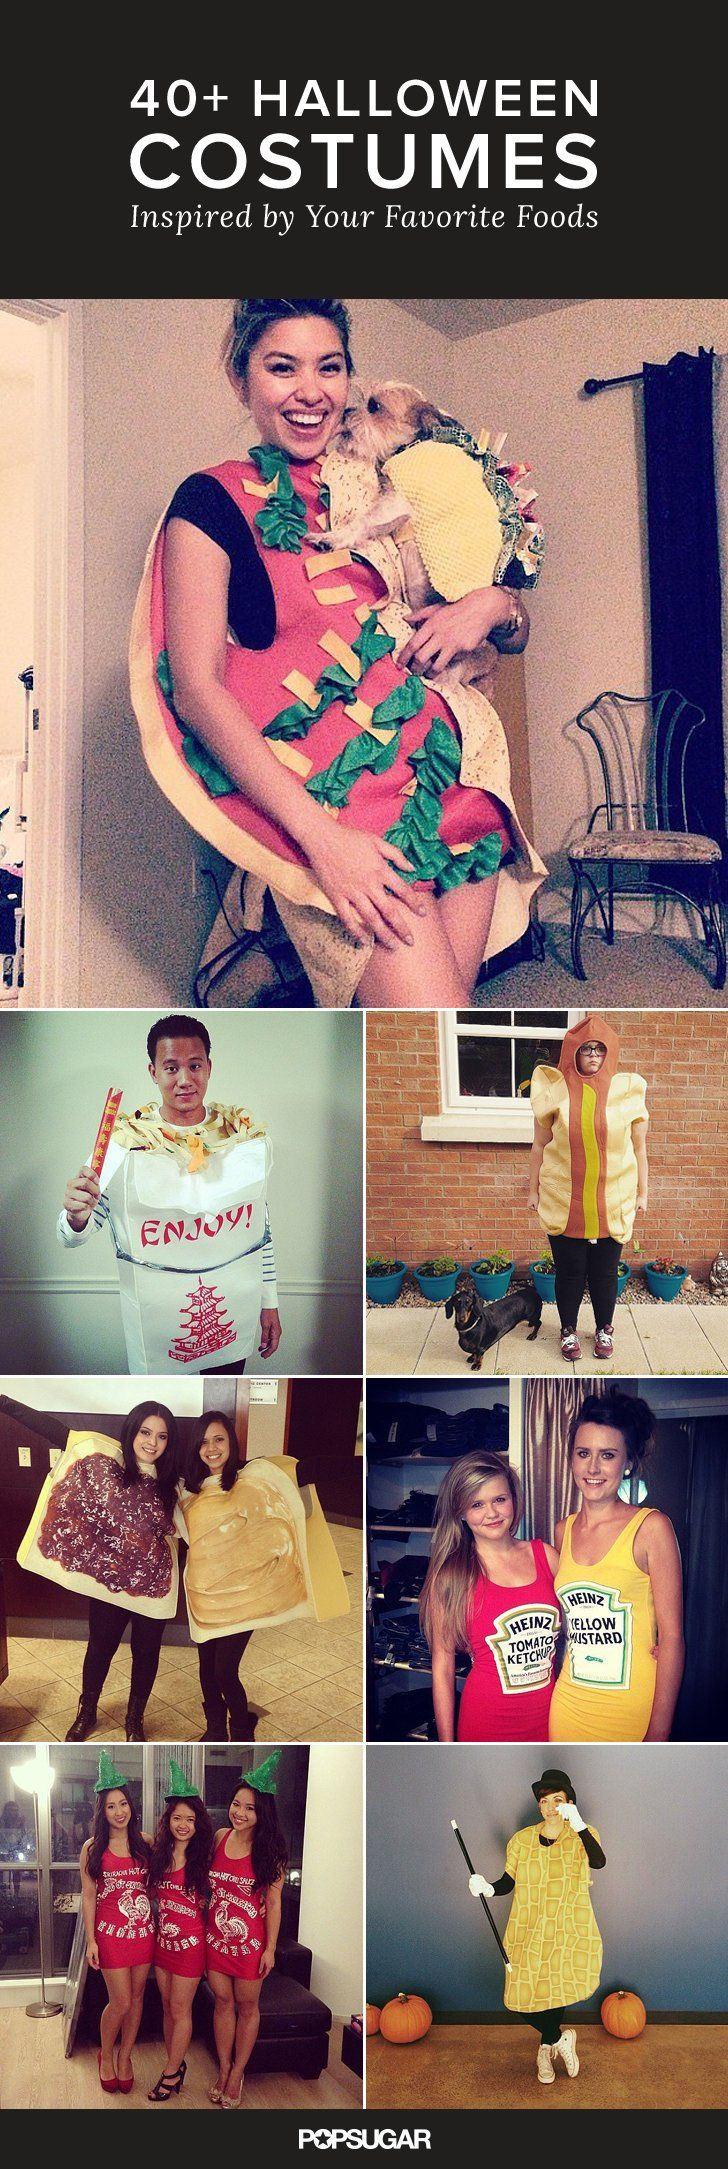 Foodies, these Halloween costumes were made for you! Check them out to get some outfit inspiration.